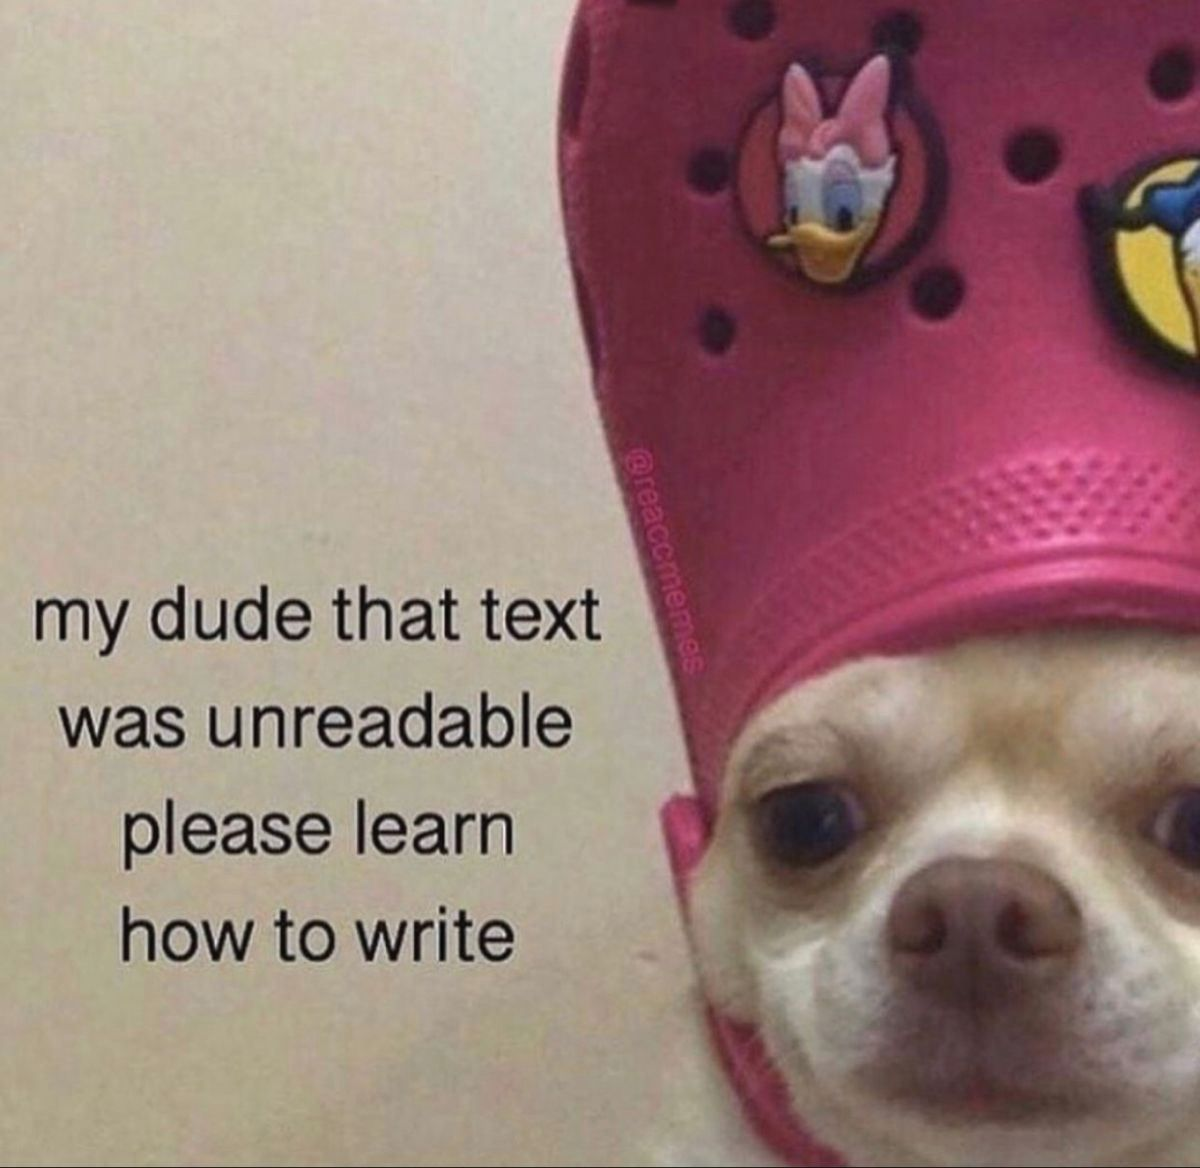 Memes To Send To Group Chat Memes To Send To The Group Chat Really Funny Memes Stupid Funny Memes Funny Relatable Memes